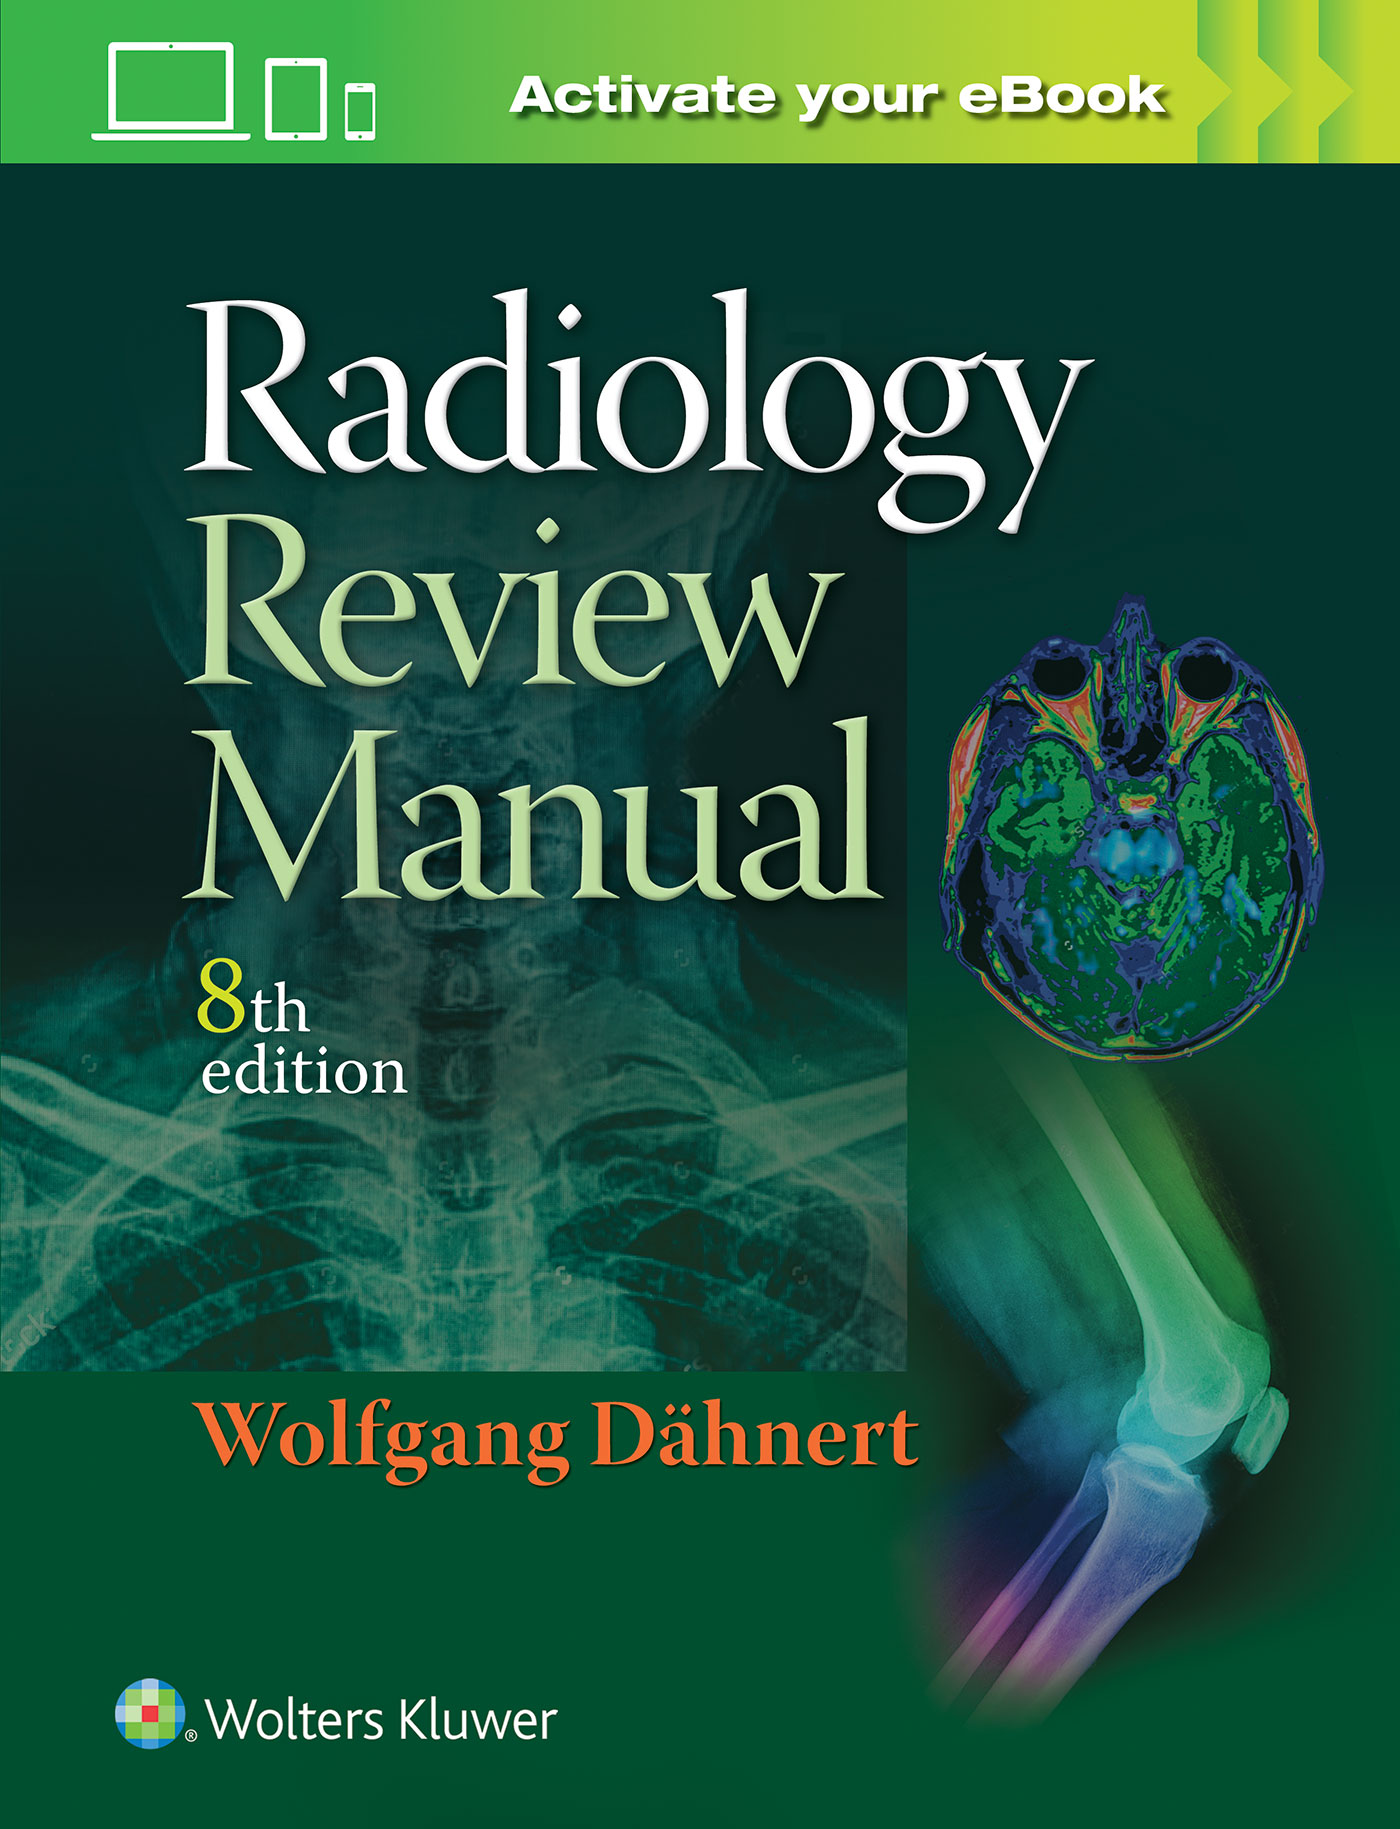 Radiology review manual 634b67bd ebe3 49c7 b0e4 4b715bbd66d6 fandeluxe Images